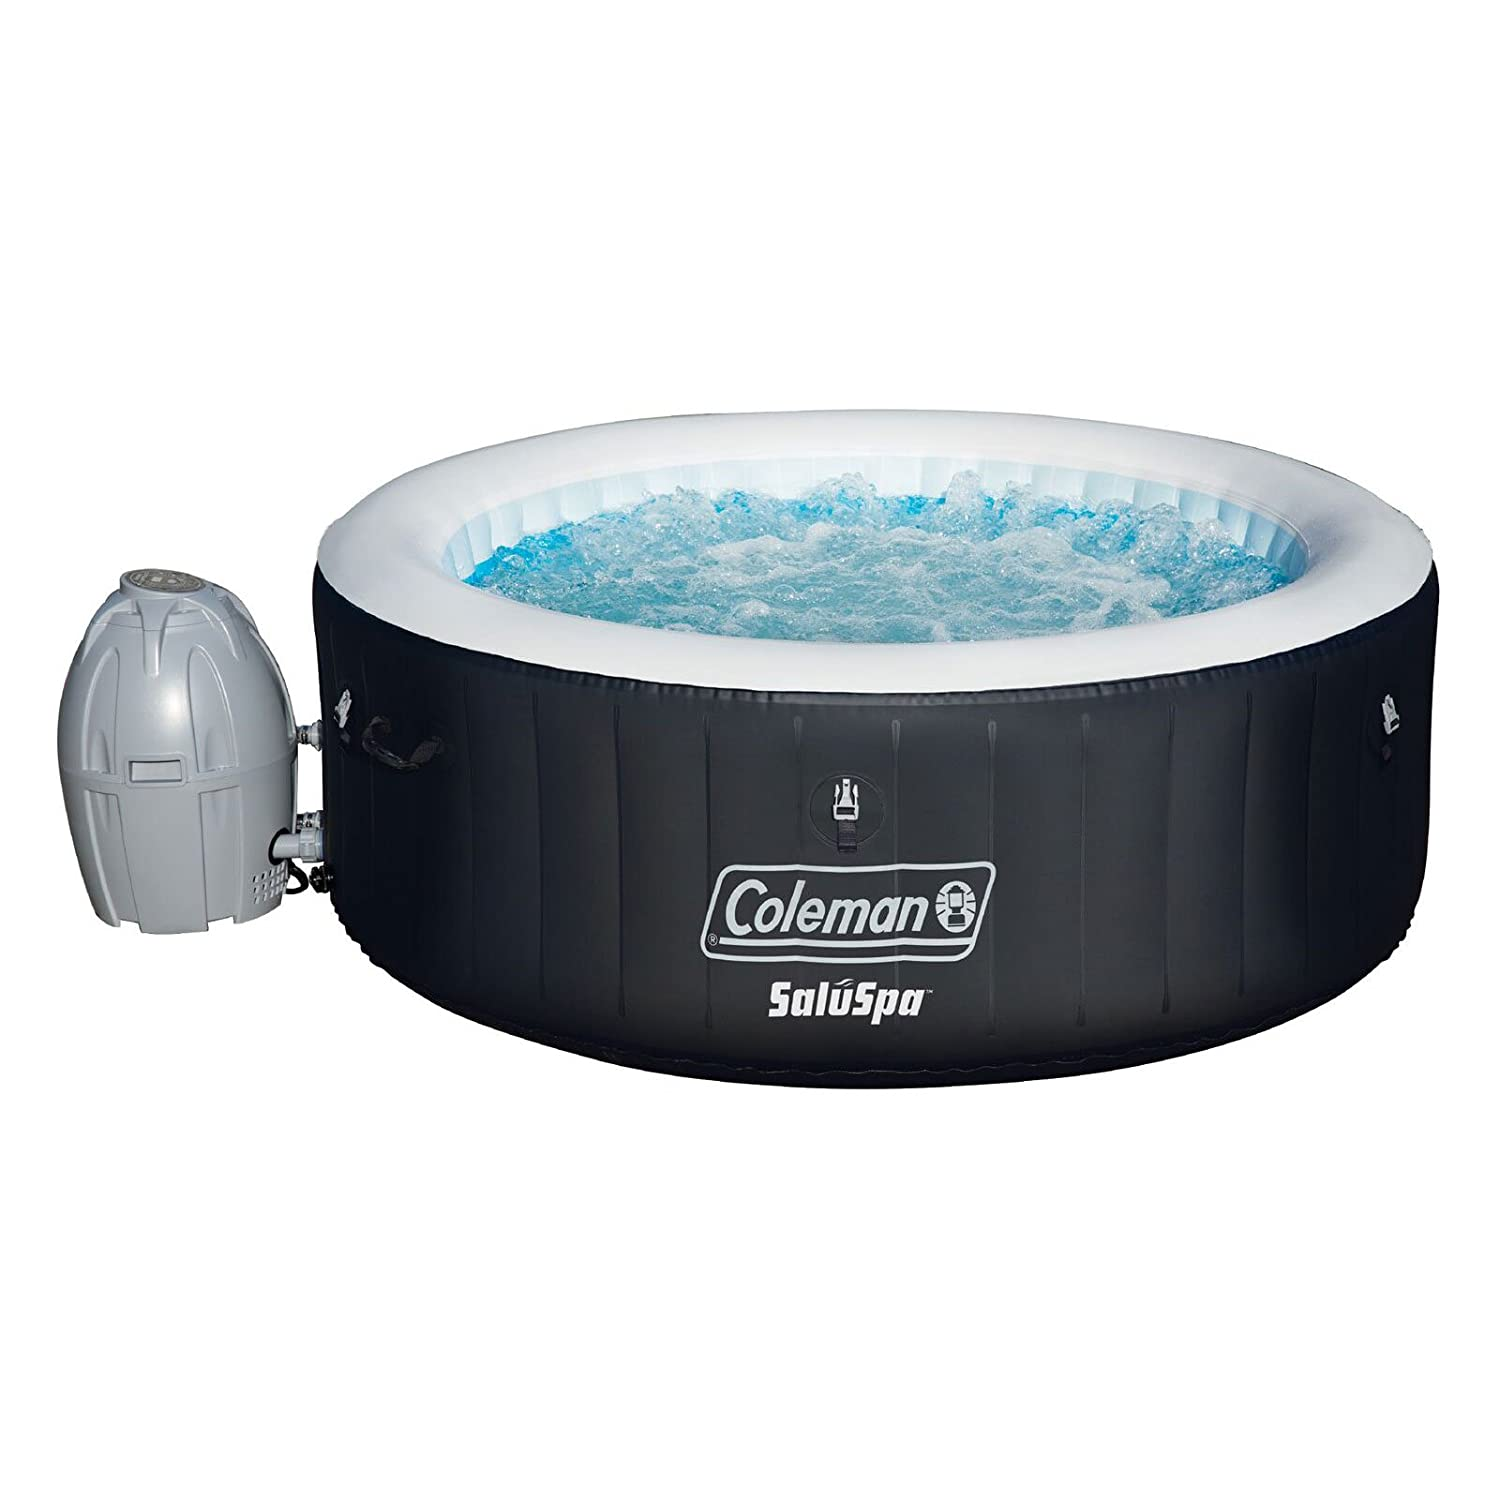 Coleman Portable Inflatable Spa 4-Person Hot Tub